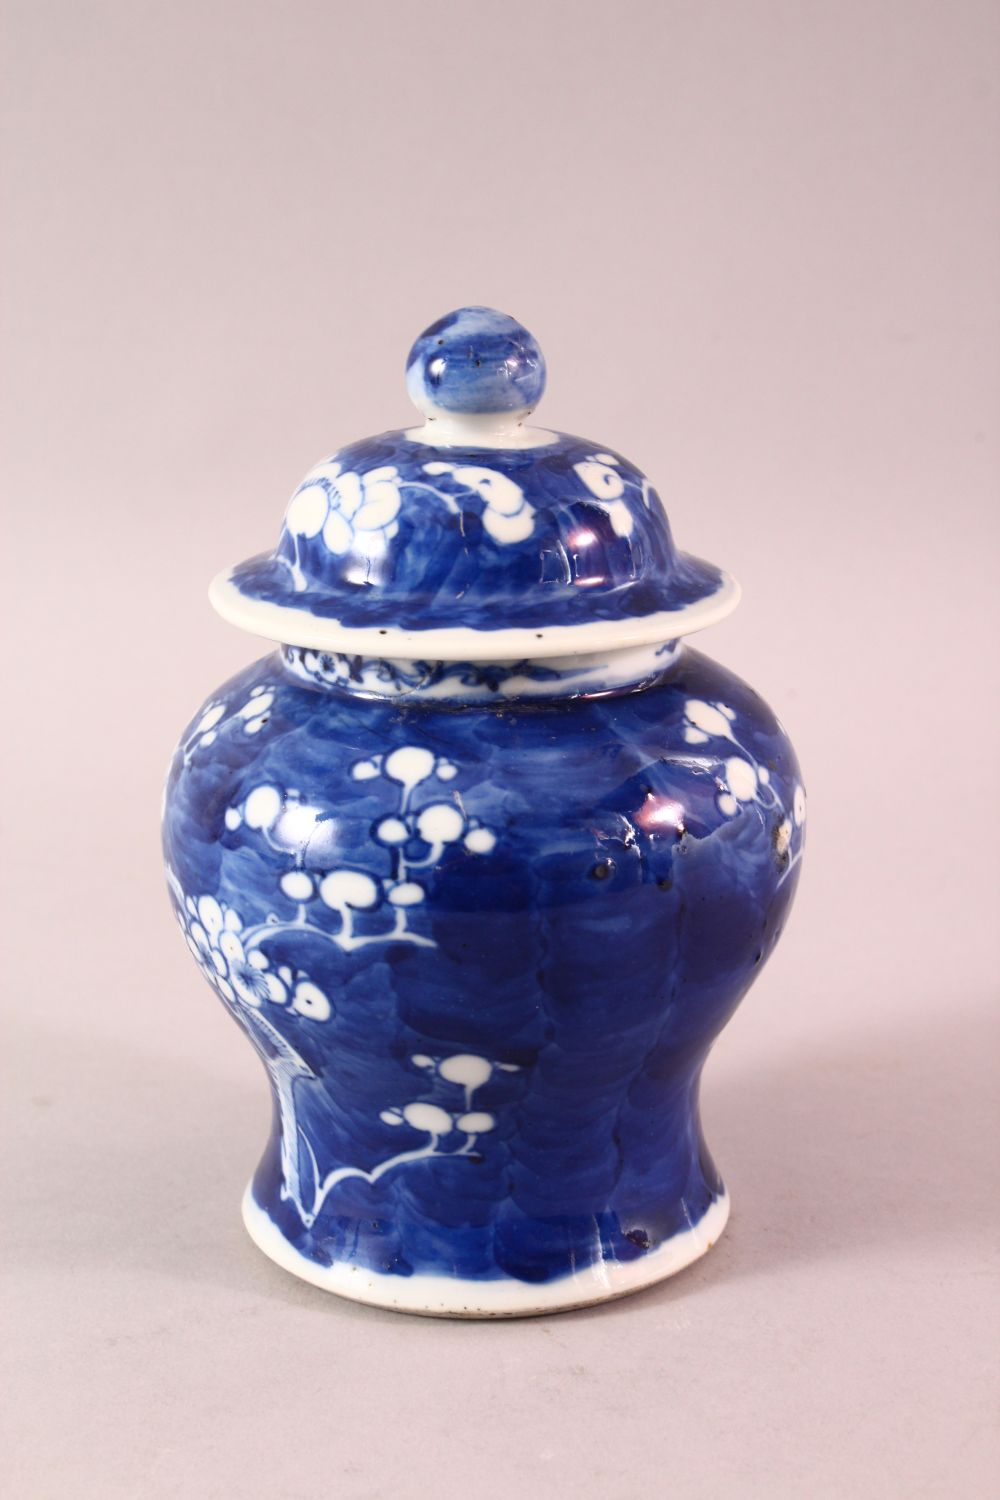 A 19TH / 20TH CENTURY CHINESE BLUE & WHITE PORCELAIN PRUNUS JAR & COVER, with prunus decoration, - Image 4 of 6